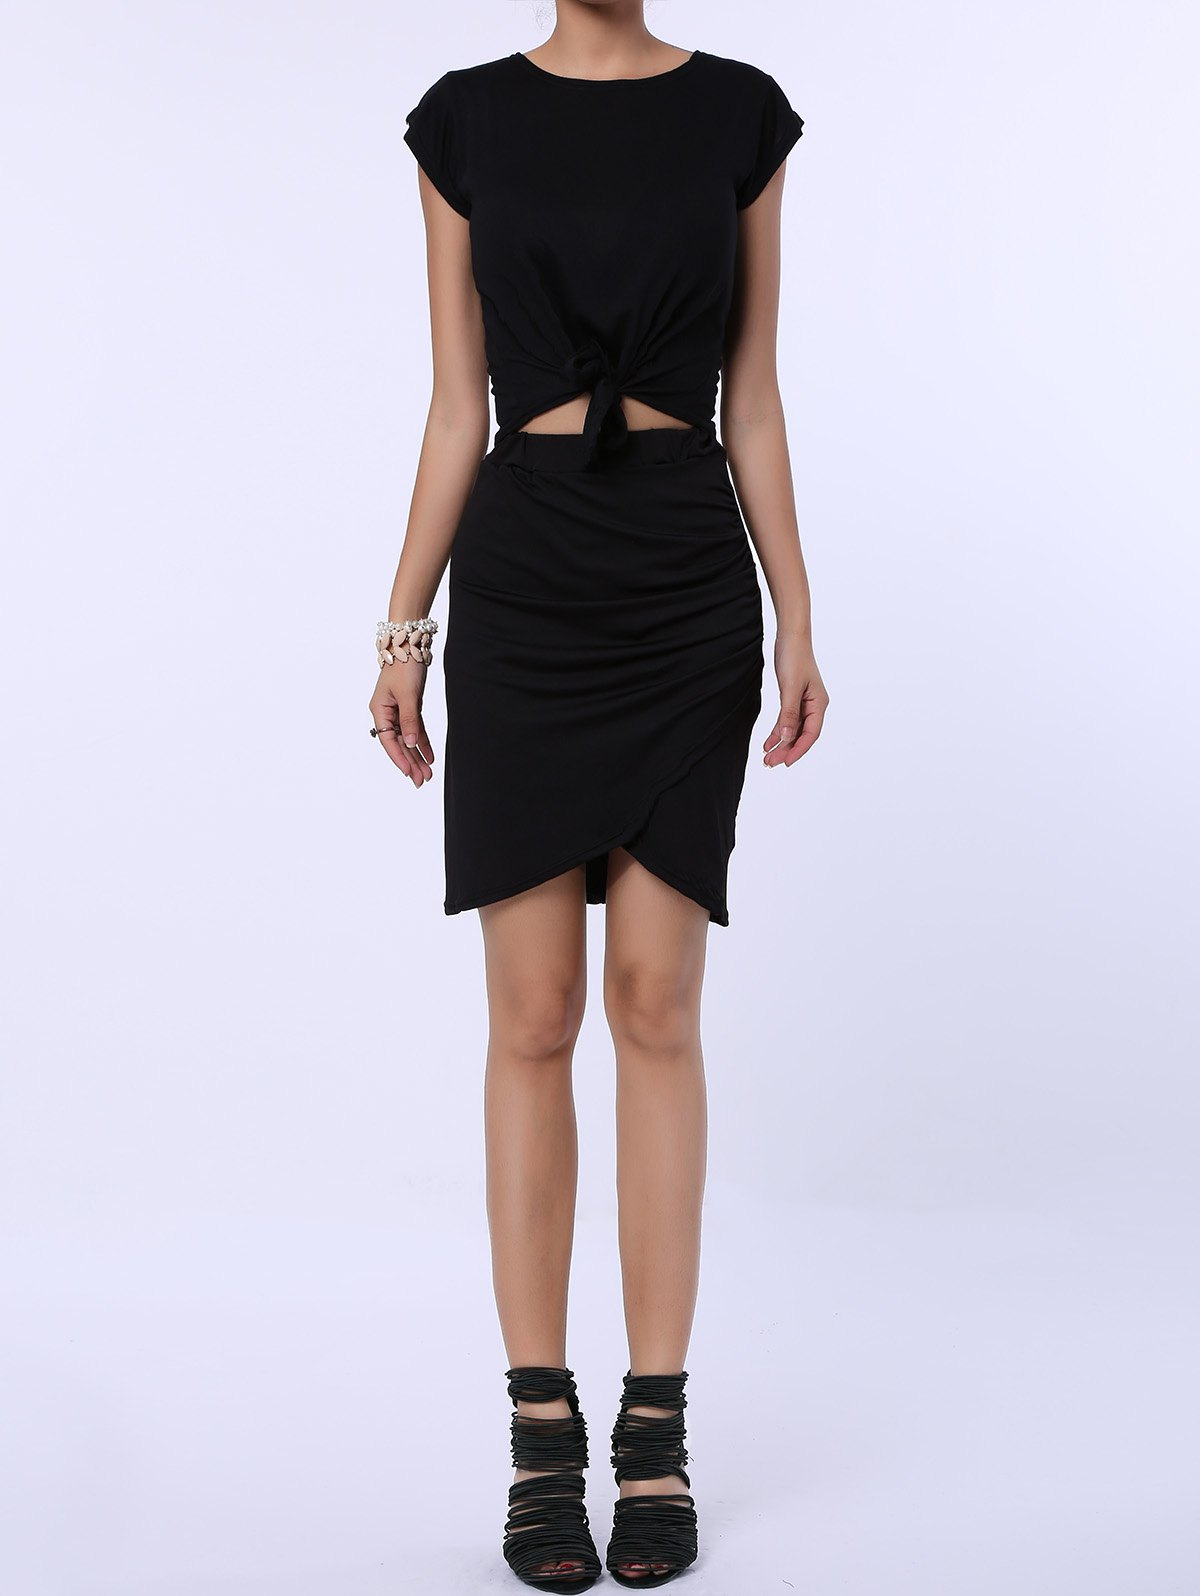 Stylish High-Waisted Solid Color Bodycon Women's Skirt